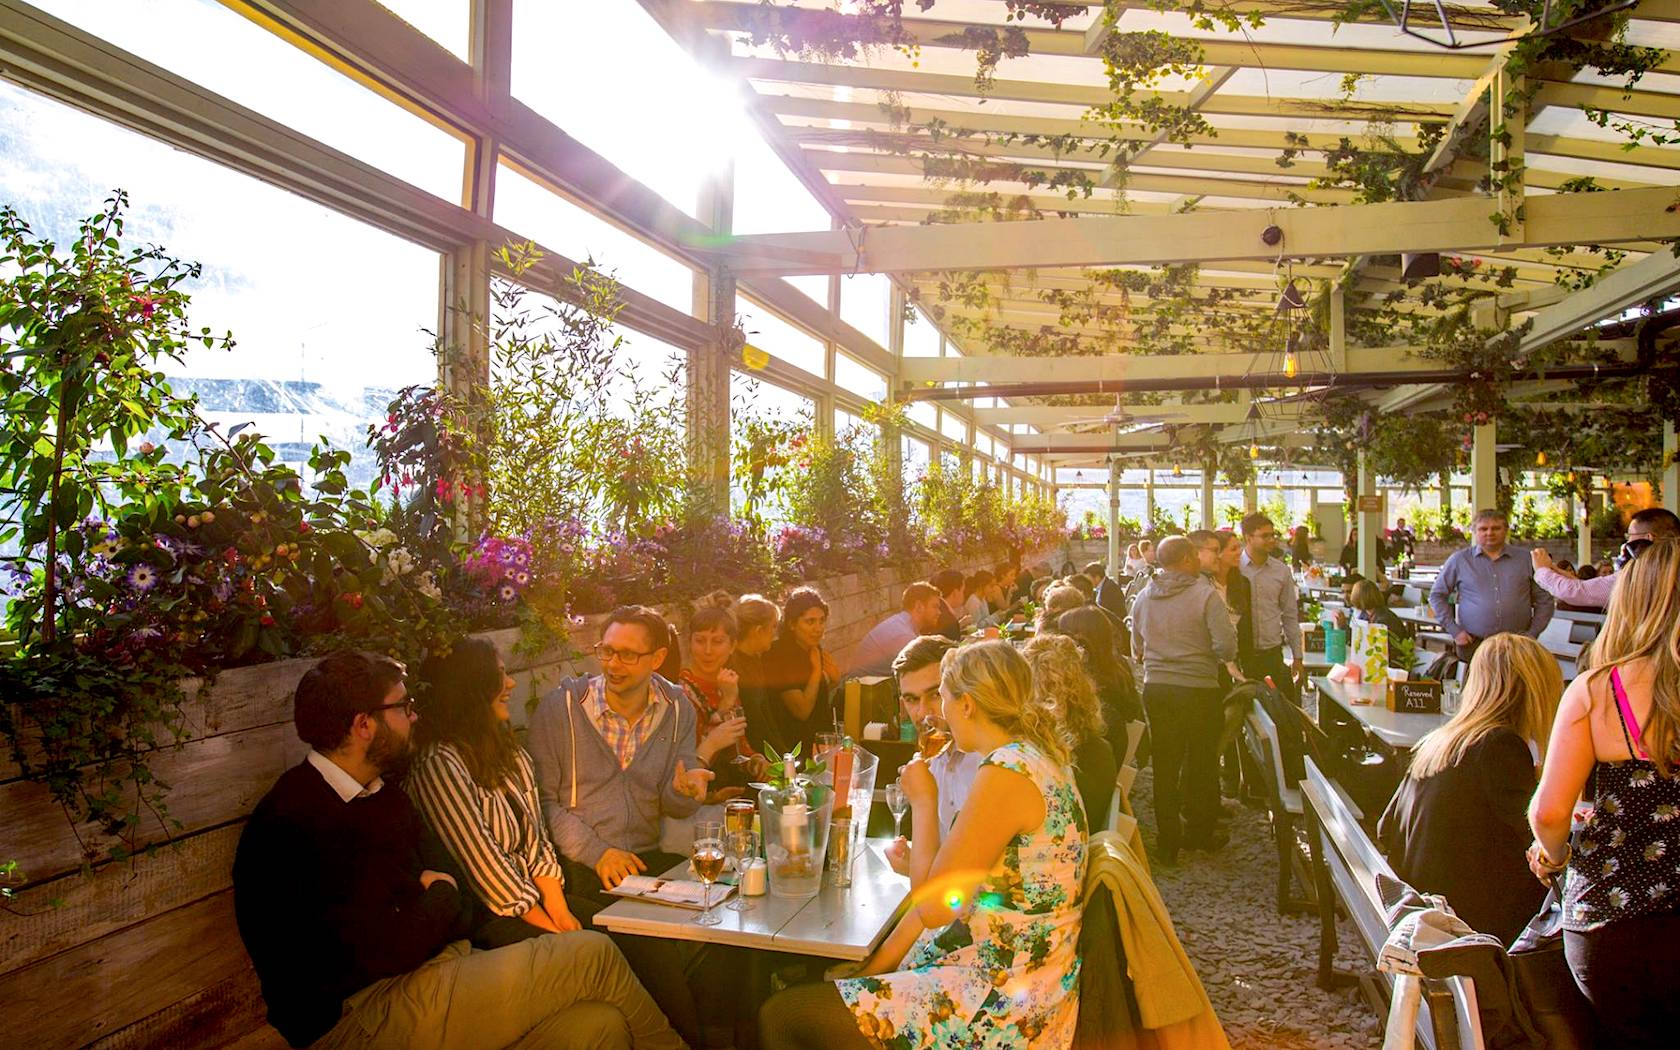 Hop Between The Best Rooftop Bars In London This Summer